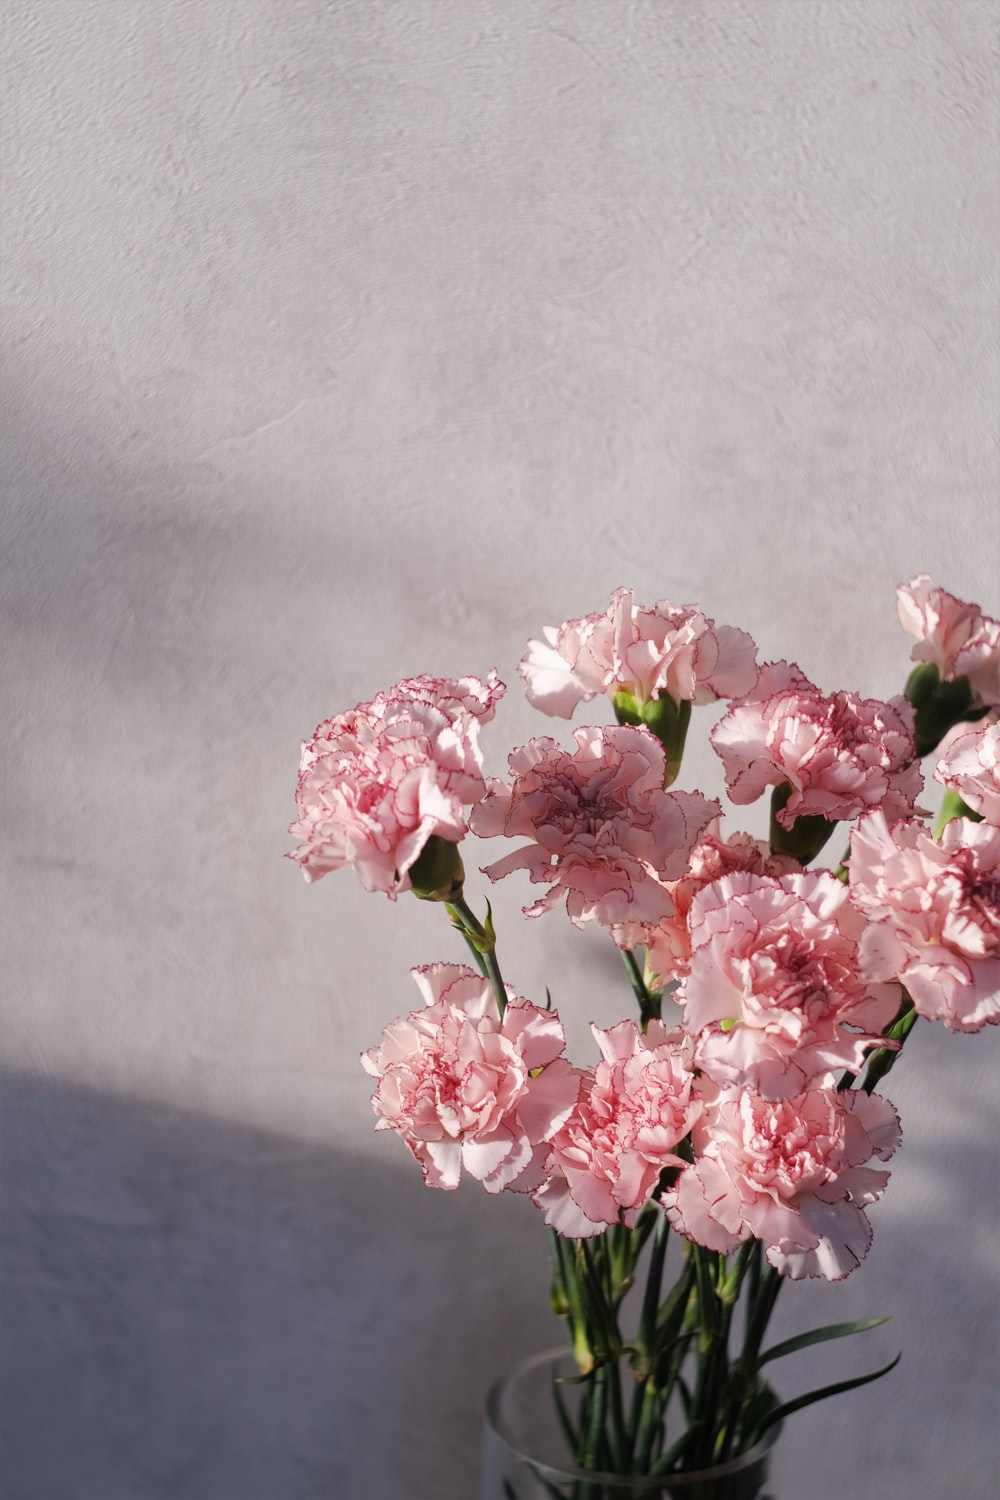 pink and white flowers on black table